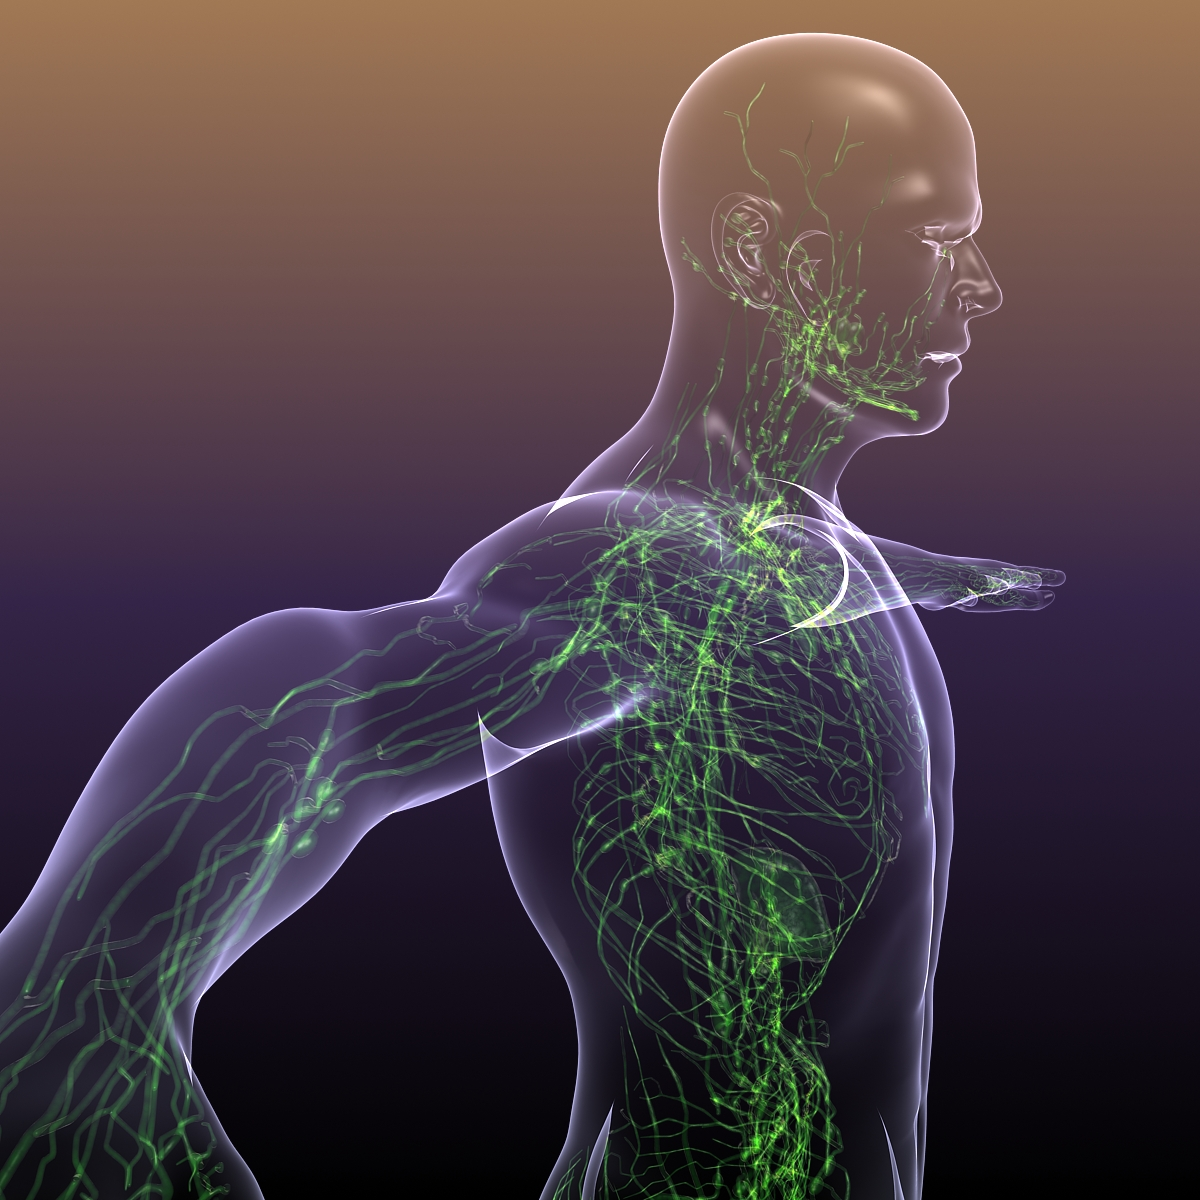 lymphatic system in human body 3d model 3ds max fbx c4d dae ma mb 3dm  obj 170717